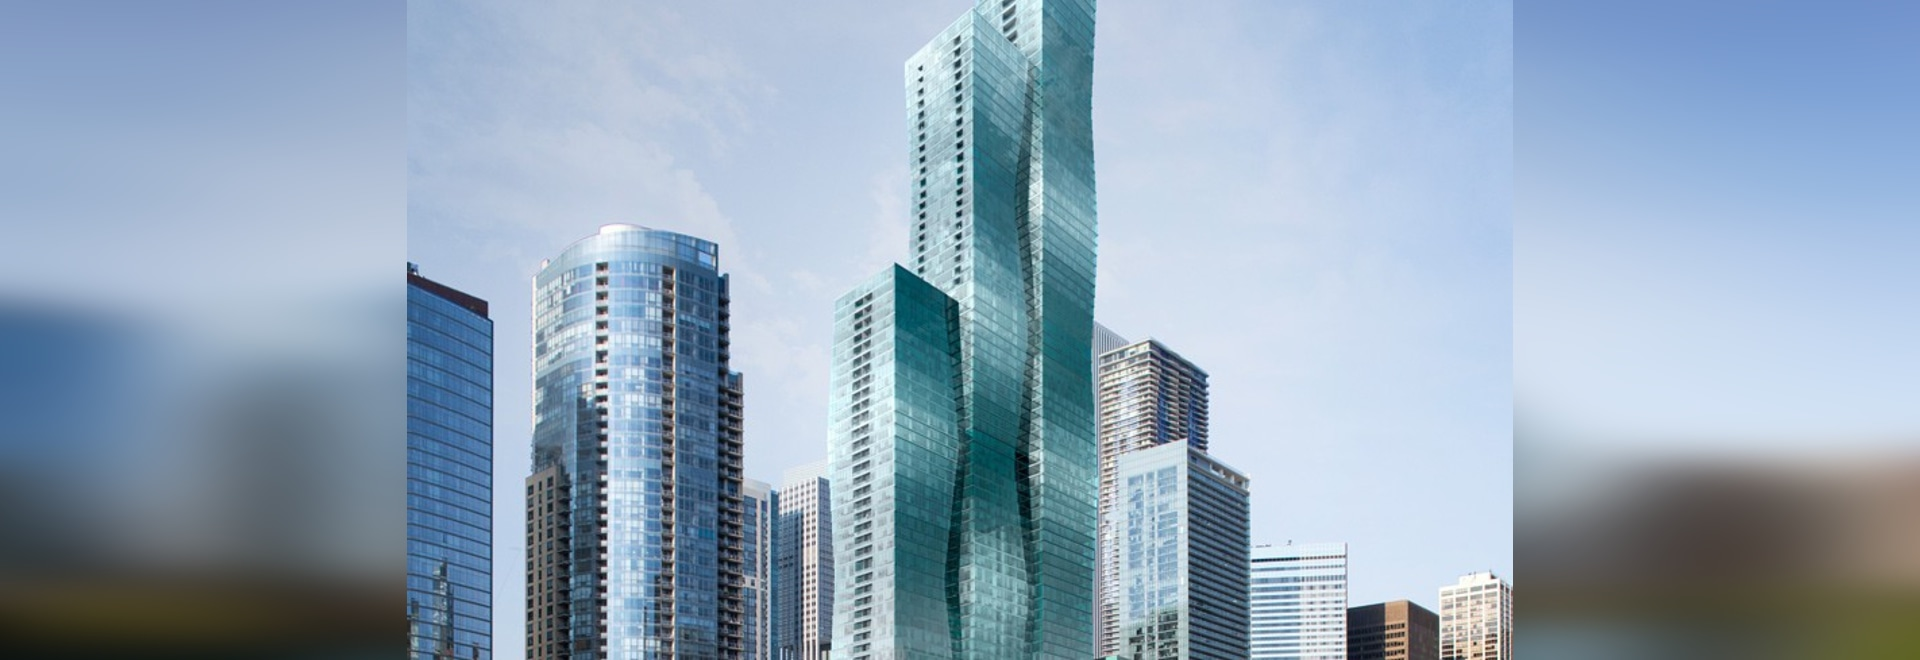 studio gang to establish luxury living in chicago with 95-storey vista tower